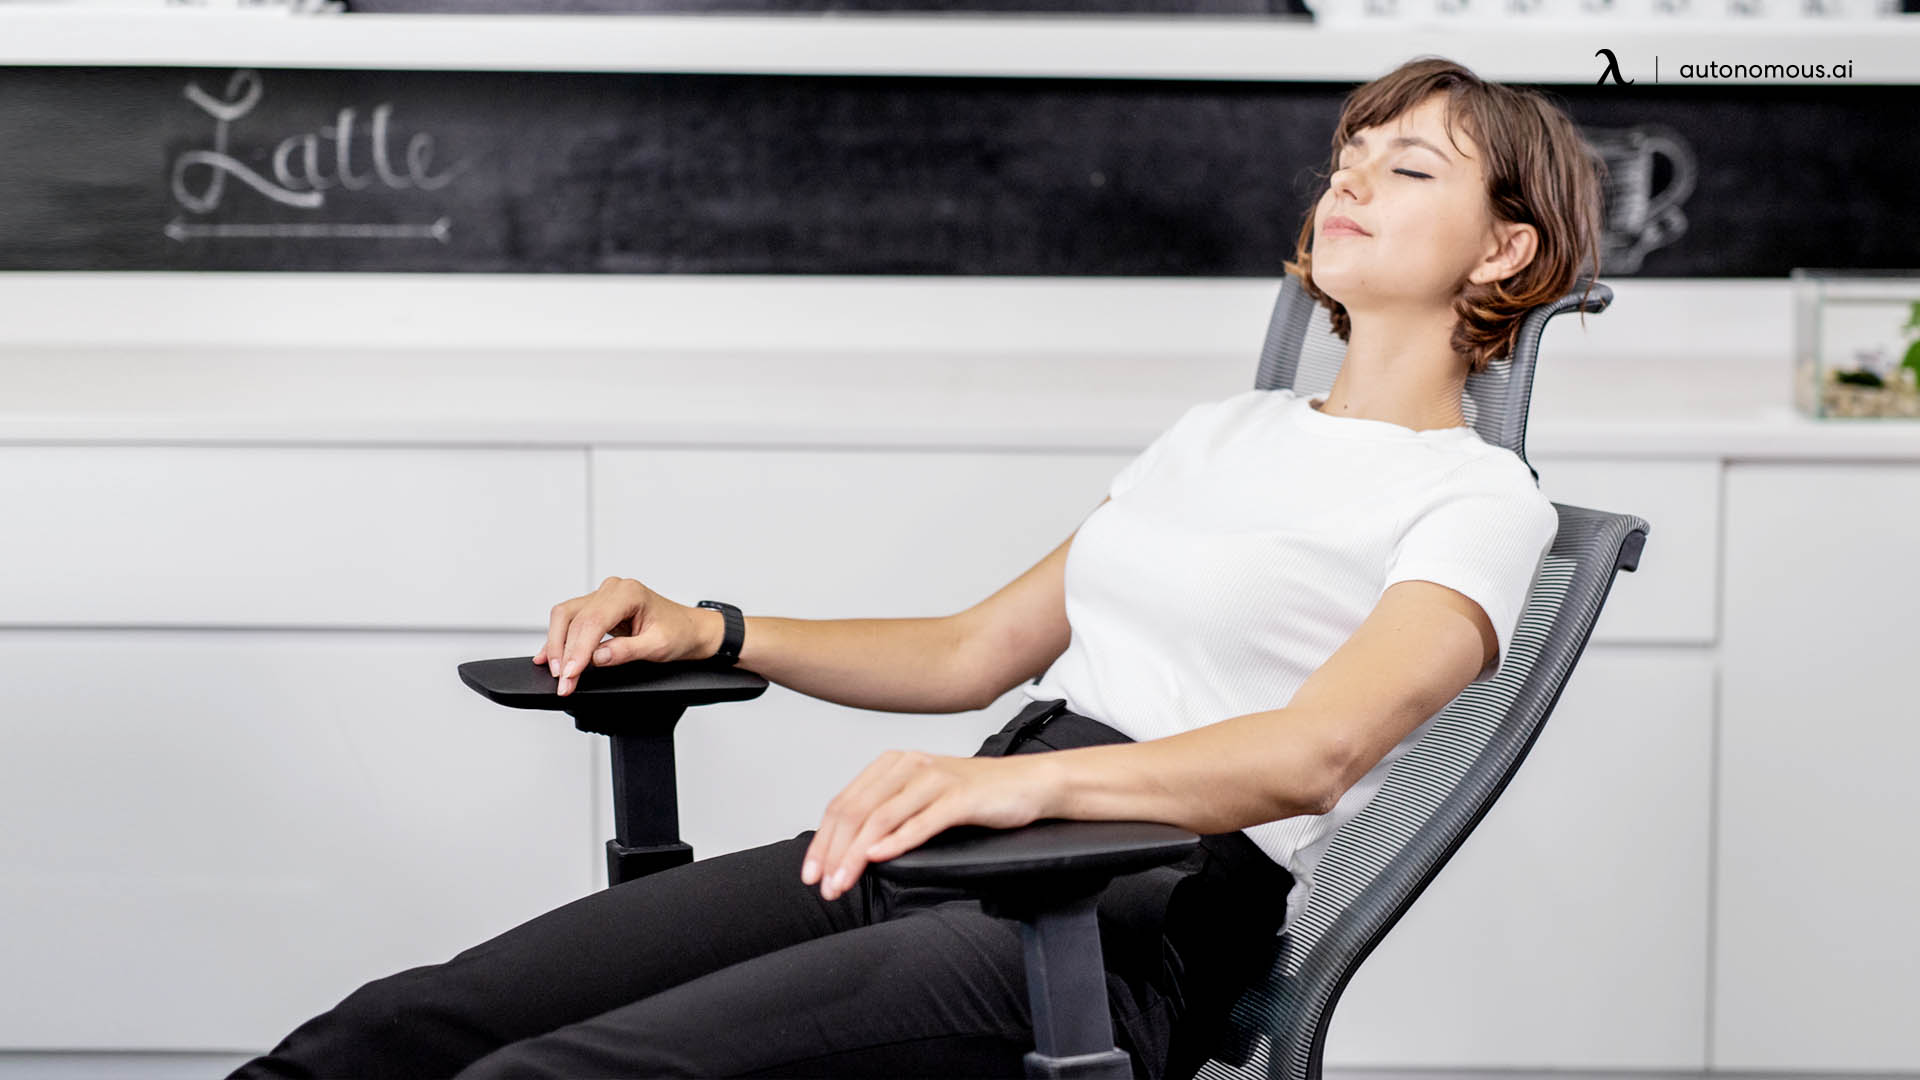 Ergonomic office chair with posture support